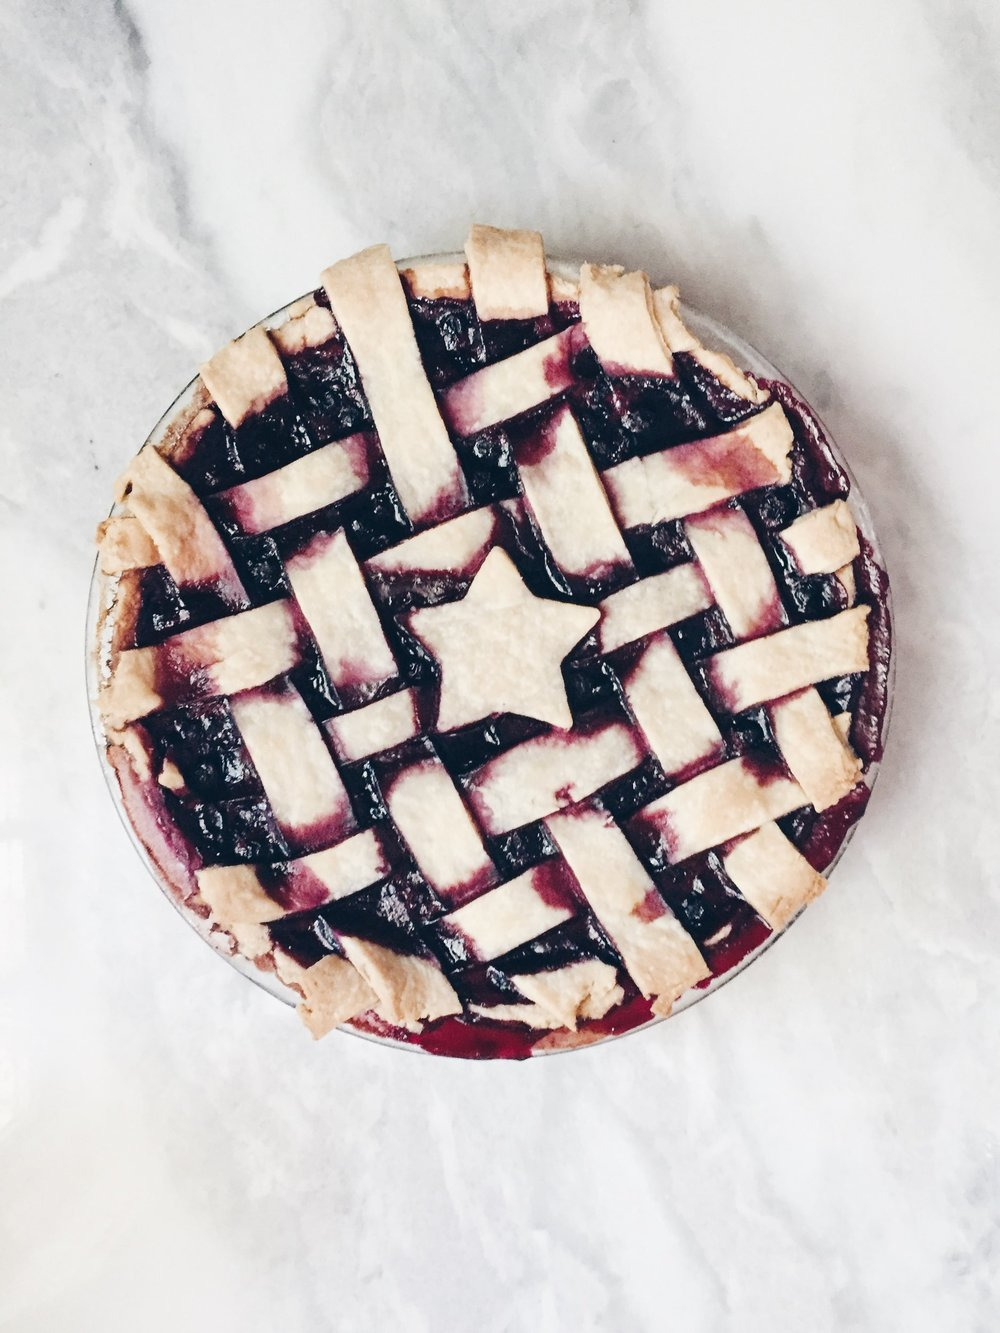 MAINE BLUEBERRY PIE - Perfect for summer!